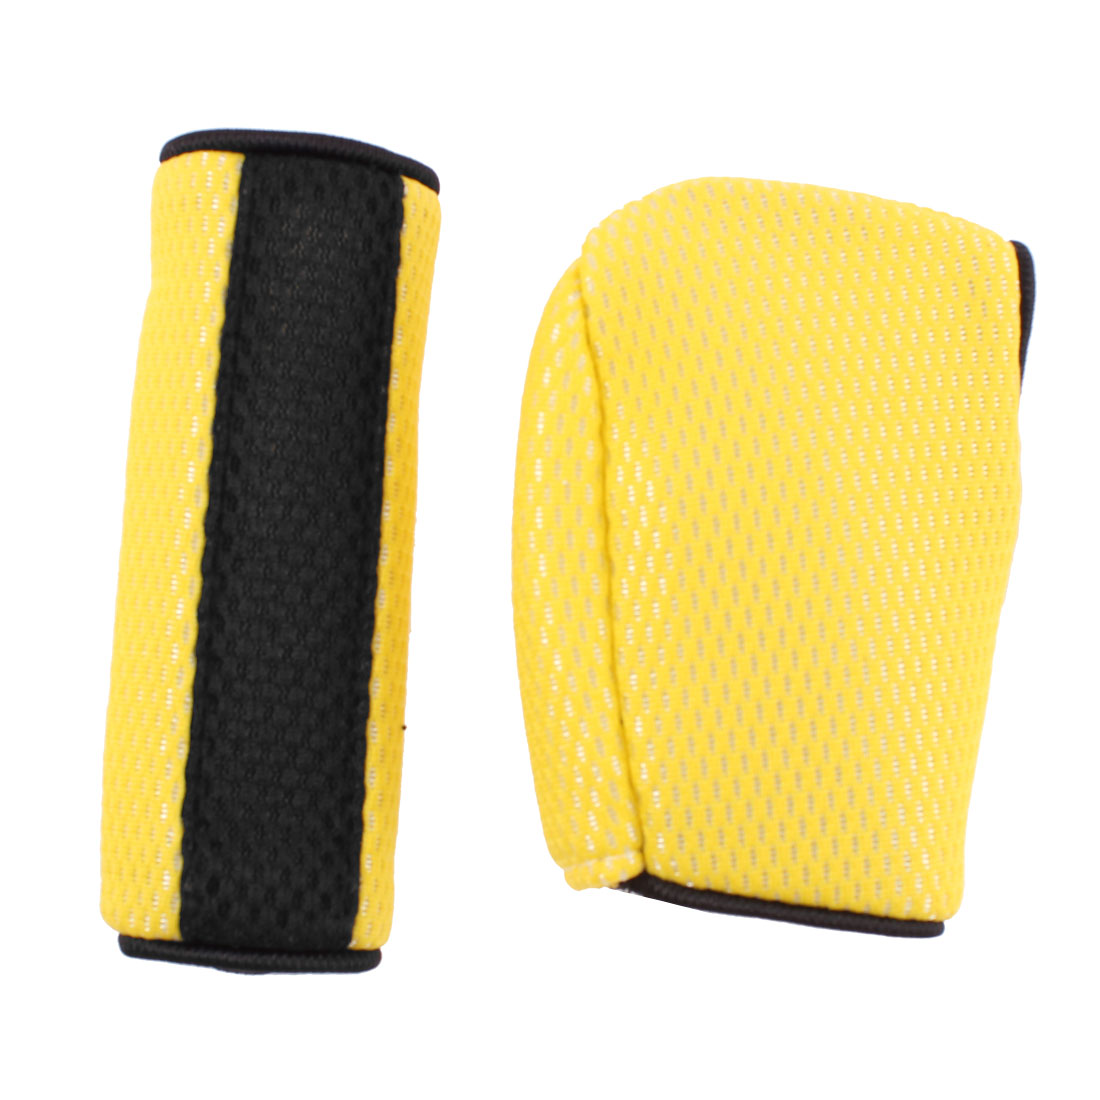 Net Design Gear Shift Knob Handbrake Cover Sleeve Yellow 2 in 1